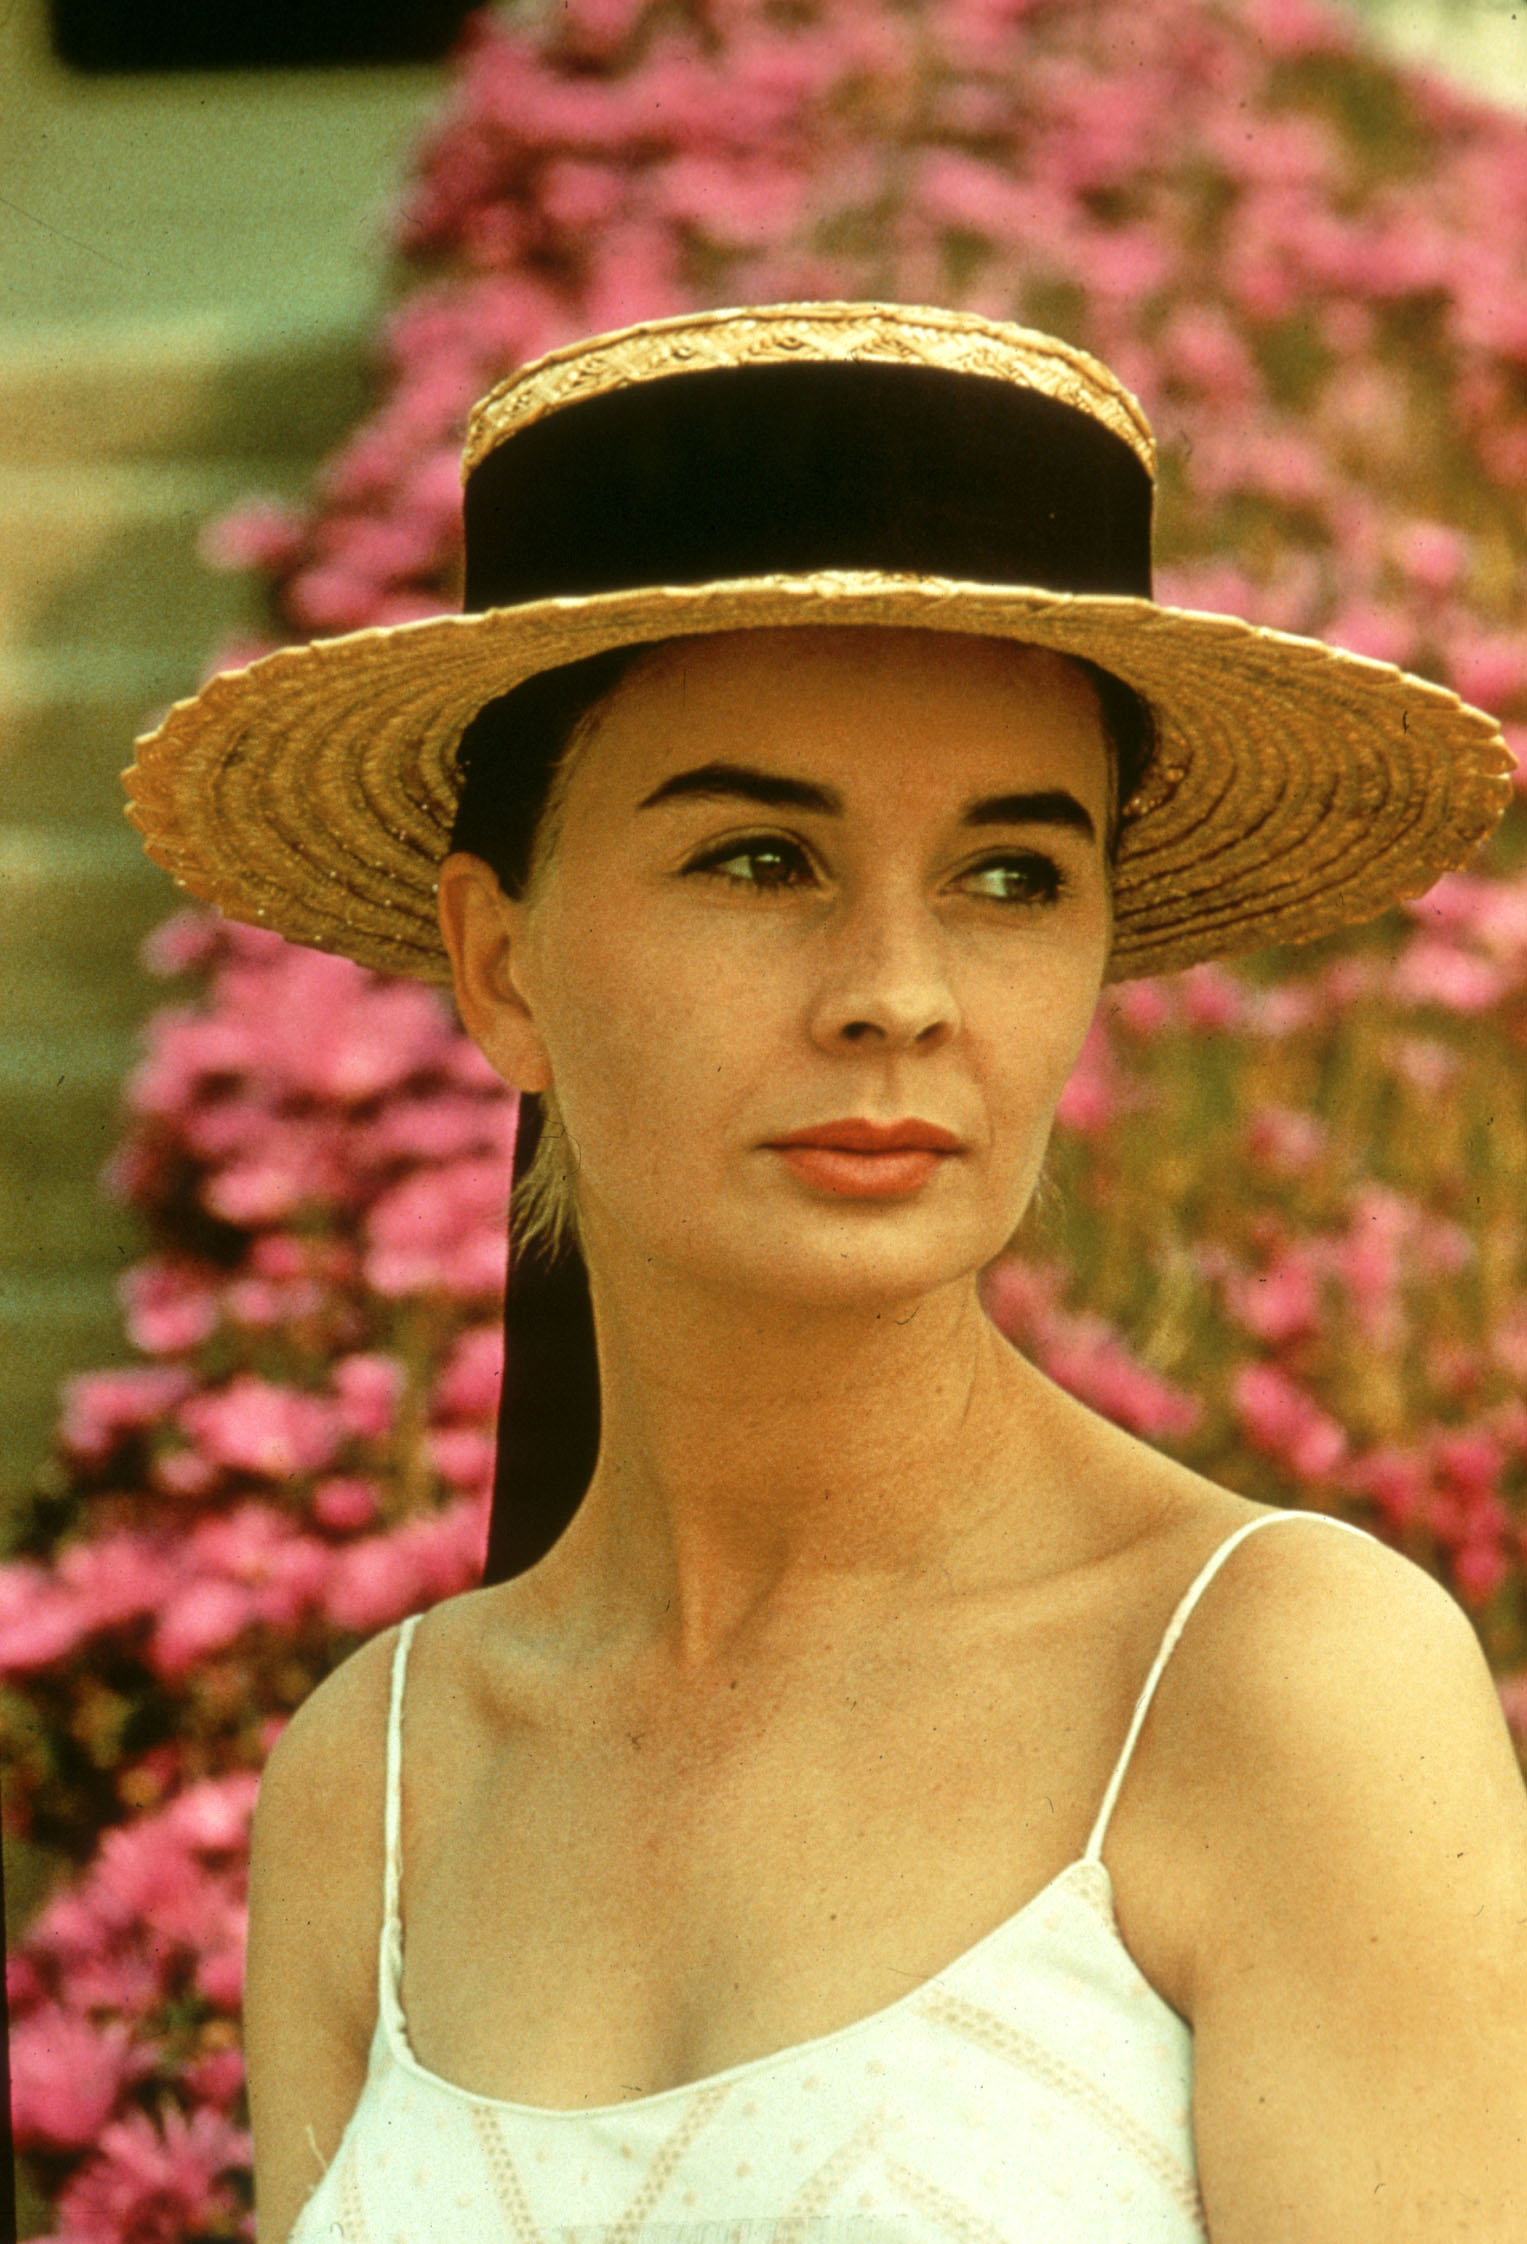 jean simmons sonjean simmons photos, jean simmons and marlon brando, jean simmons stewart granger, jean simmons quotes, jean simmons, jean simmons actress, jean simmons wiki, jean simmons wikipedia, jean simmons thorn birds, jean simmons imdb, jean simmons net worth, jean simmons measurements, jean simmons stewart granger wedding, jean simmons grave, jean simmons tongue, jean simmons son, jean simmons addiction, jean simmons daughters